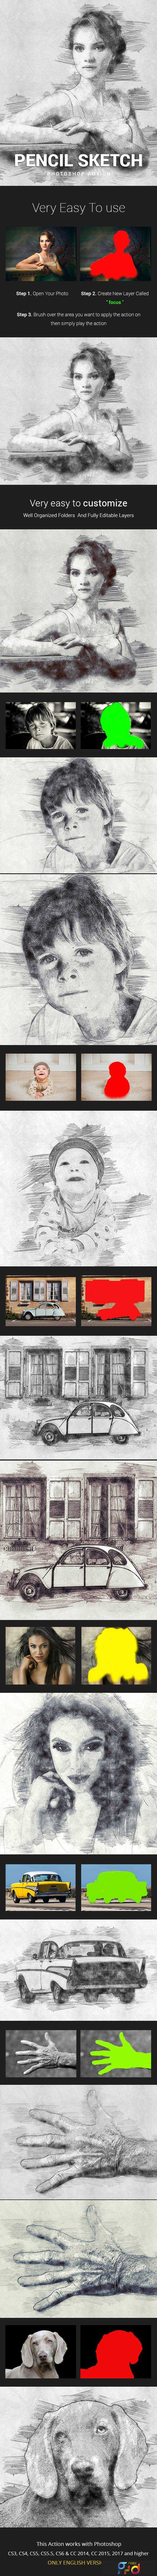 1805252 Pencil Sketch Photoshop Action Photo Effects